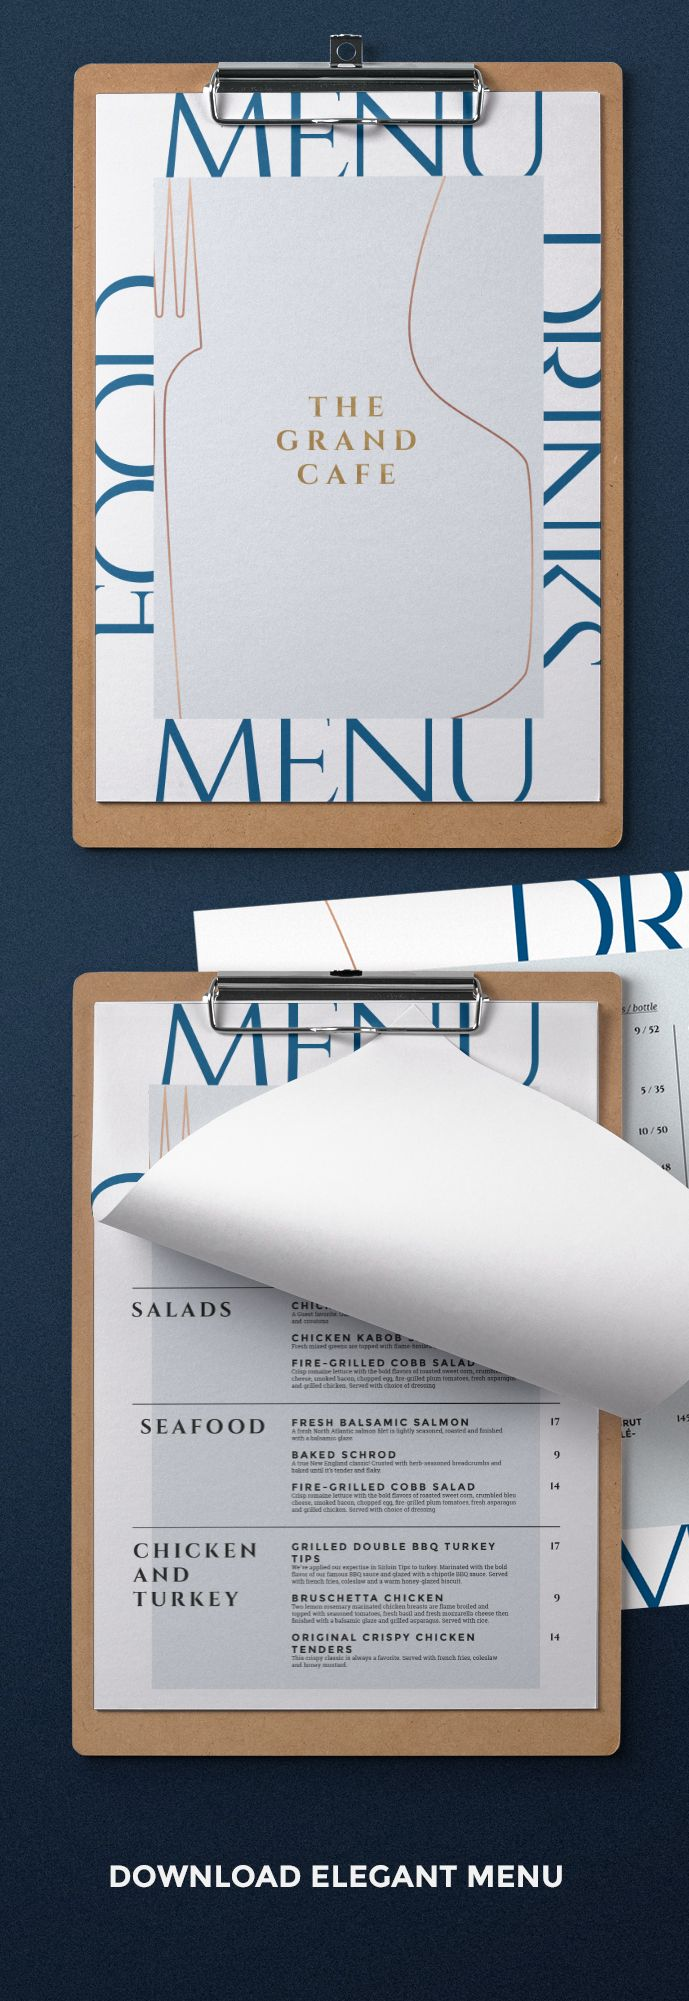 Restaurant Menu Design. #restaurant #menu #design #minimalist #food